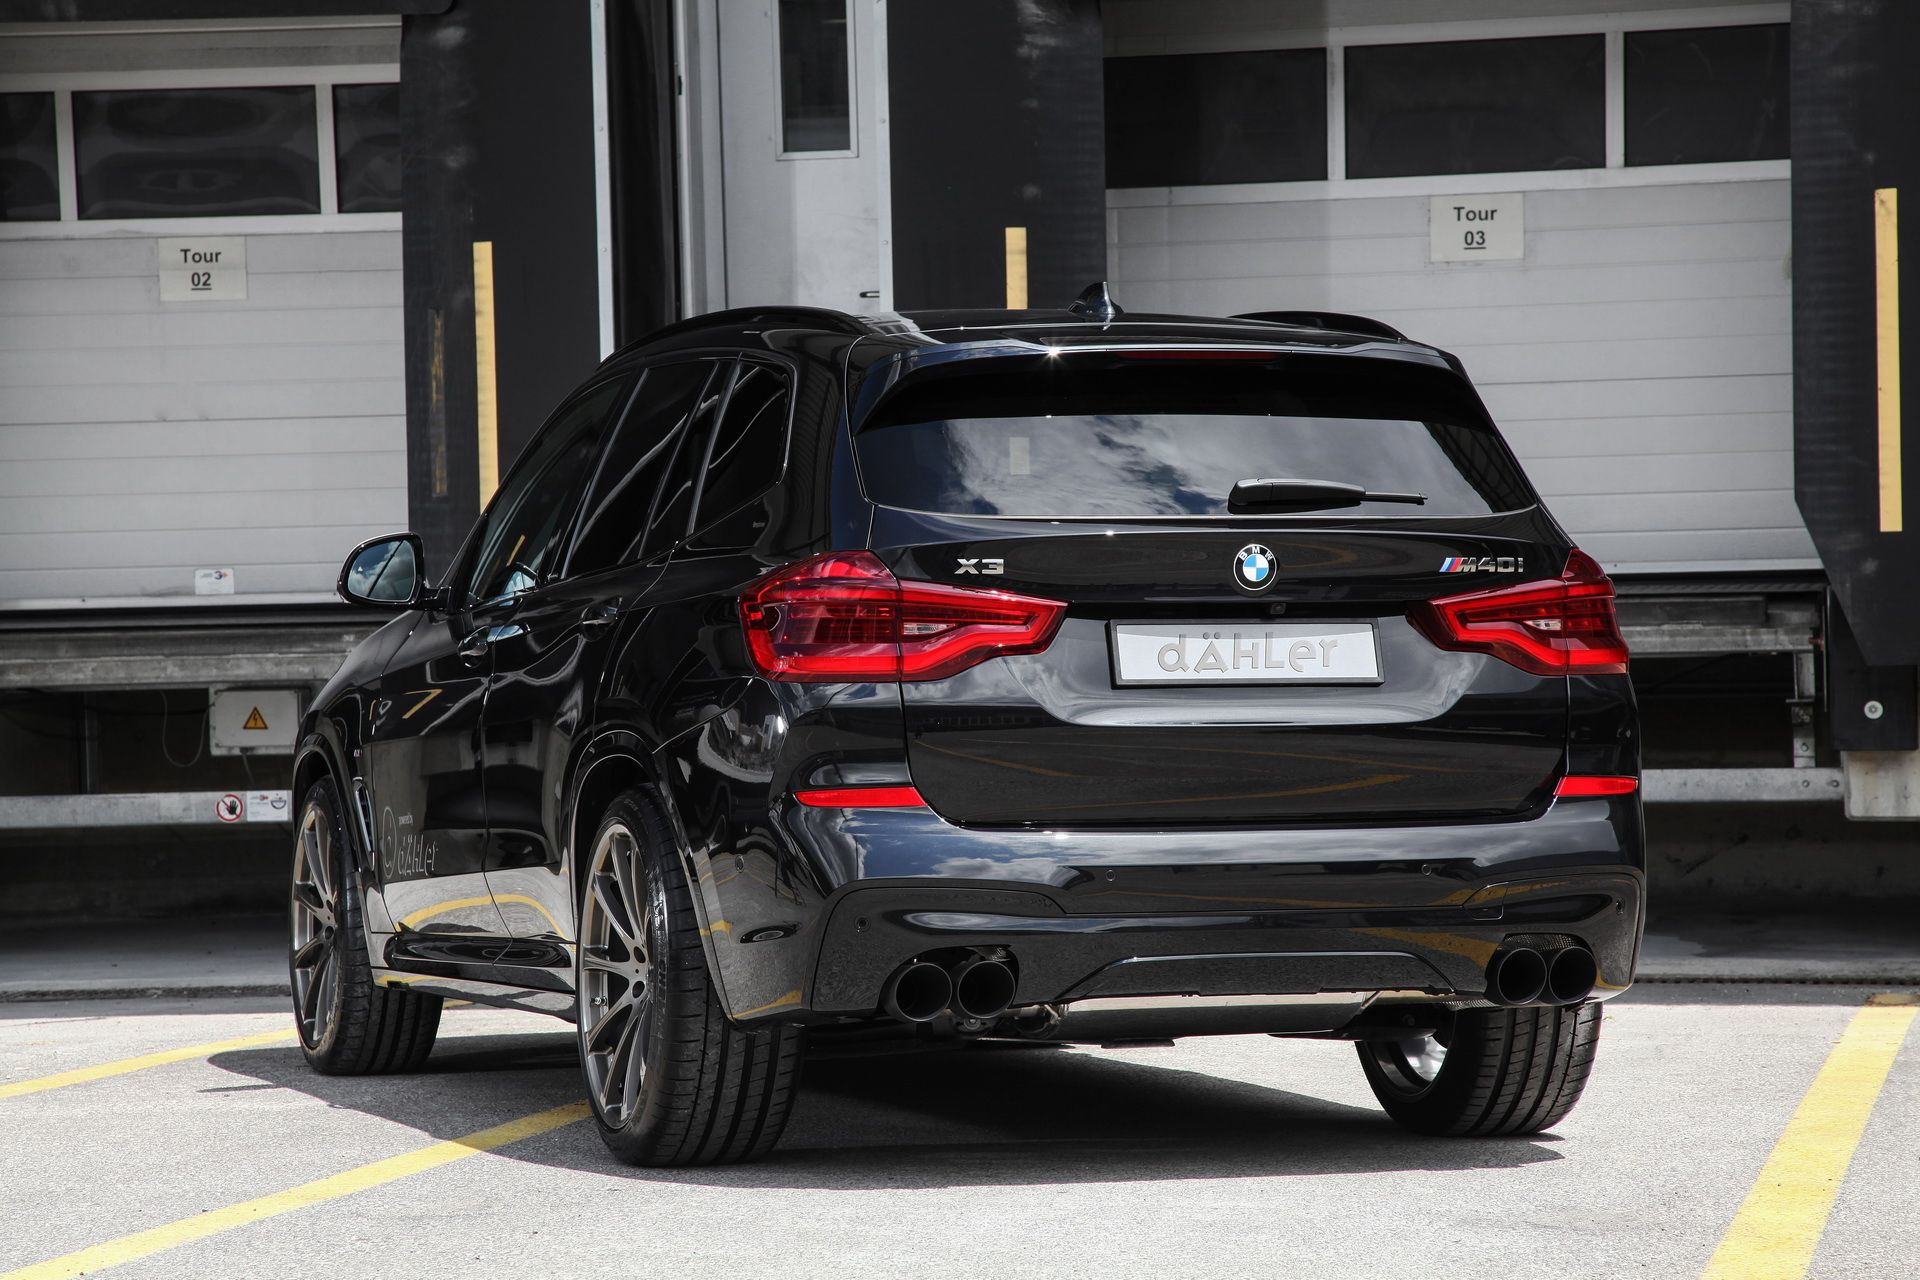 BMW_X3_M40i_by_Dahler_0023